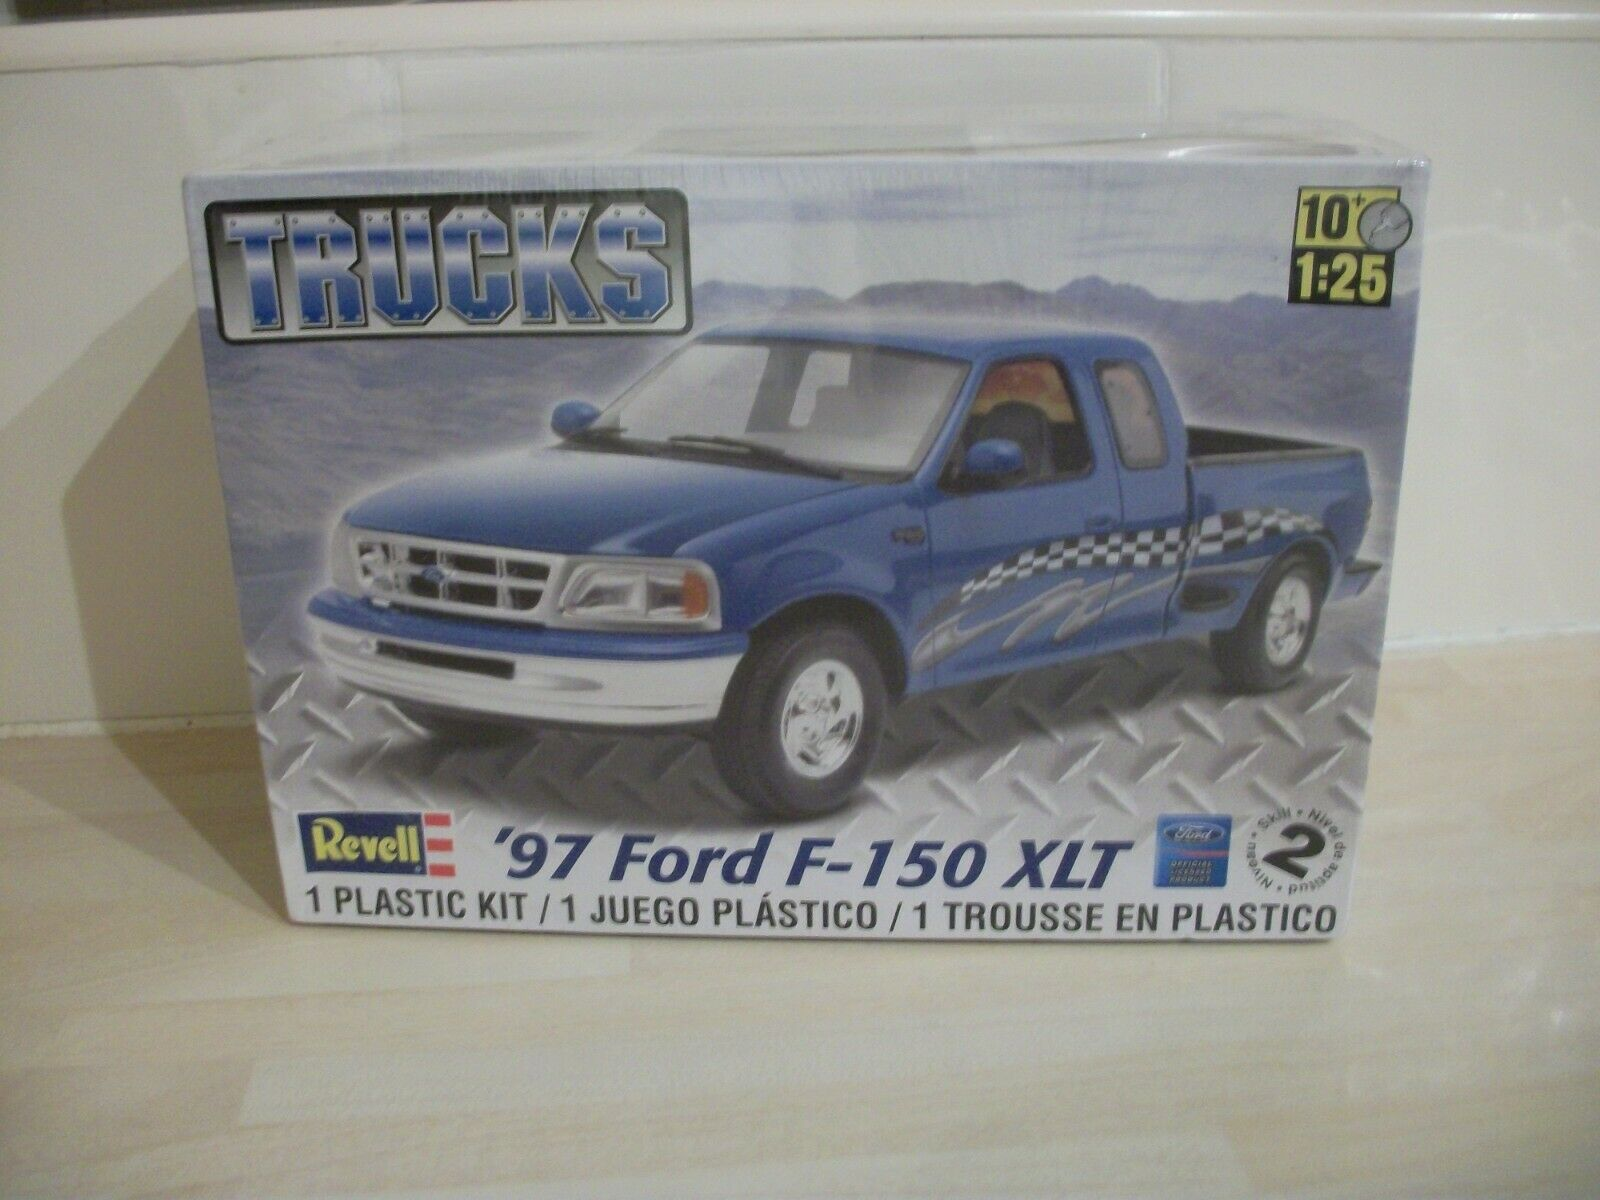 Revell 1 25 Scale 1997 Ford F-150 XLT Model Kit (BNIB)